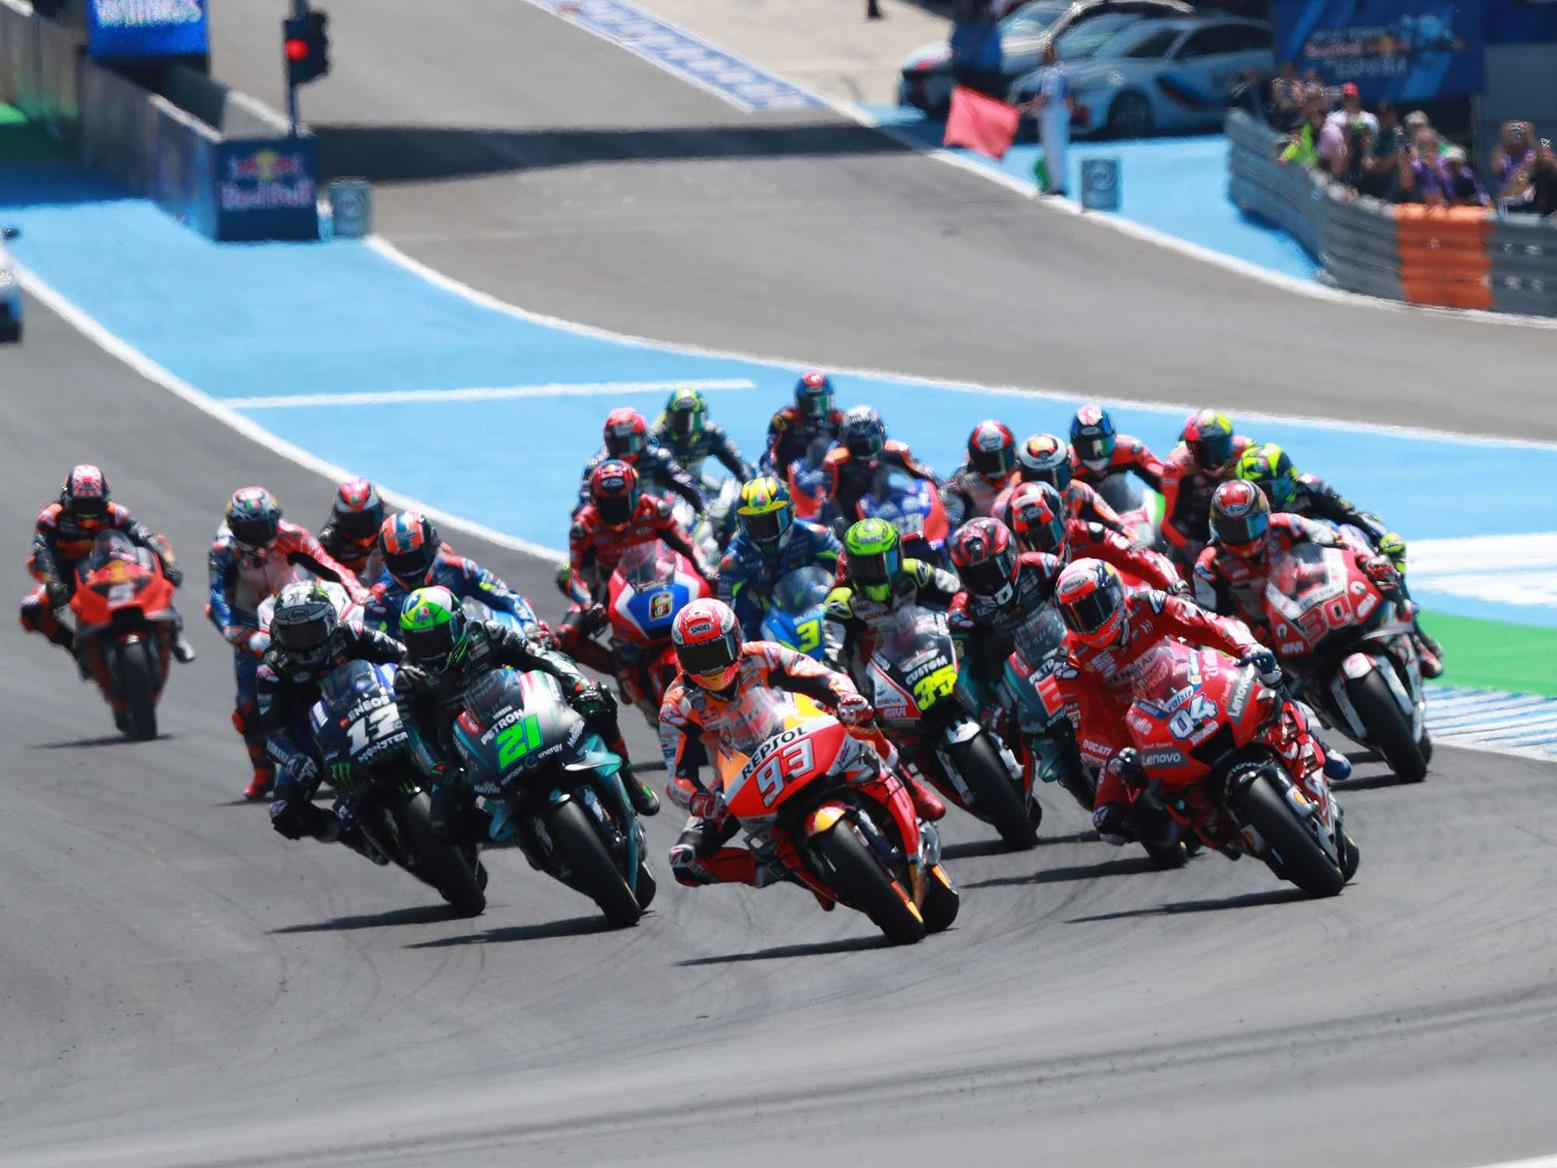 Dorna Sports CEO Carmelo Ezpeleta releases statement on coronavirus situation